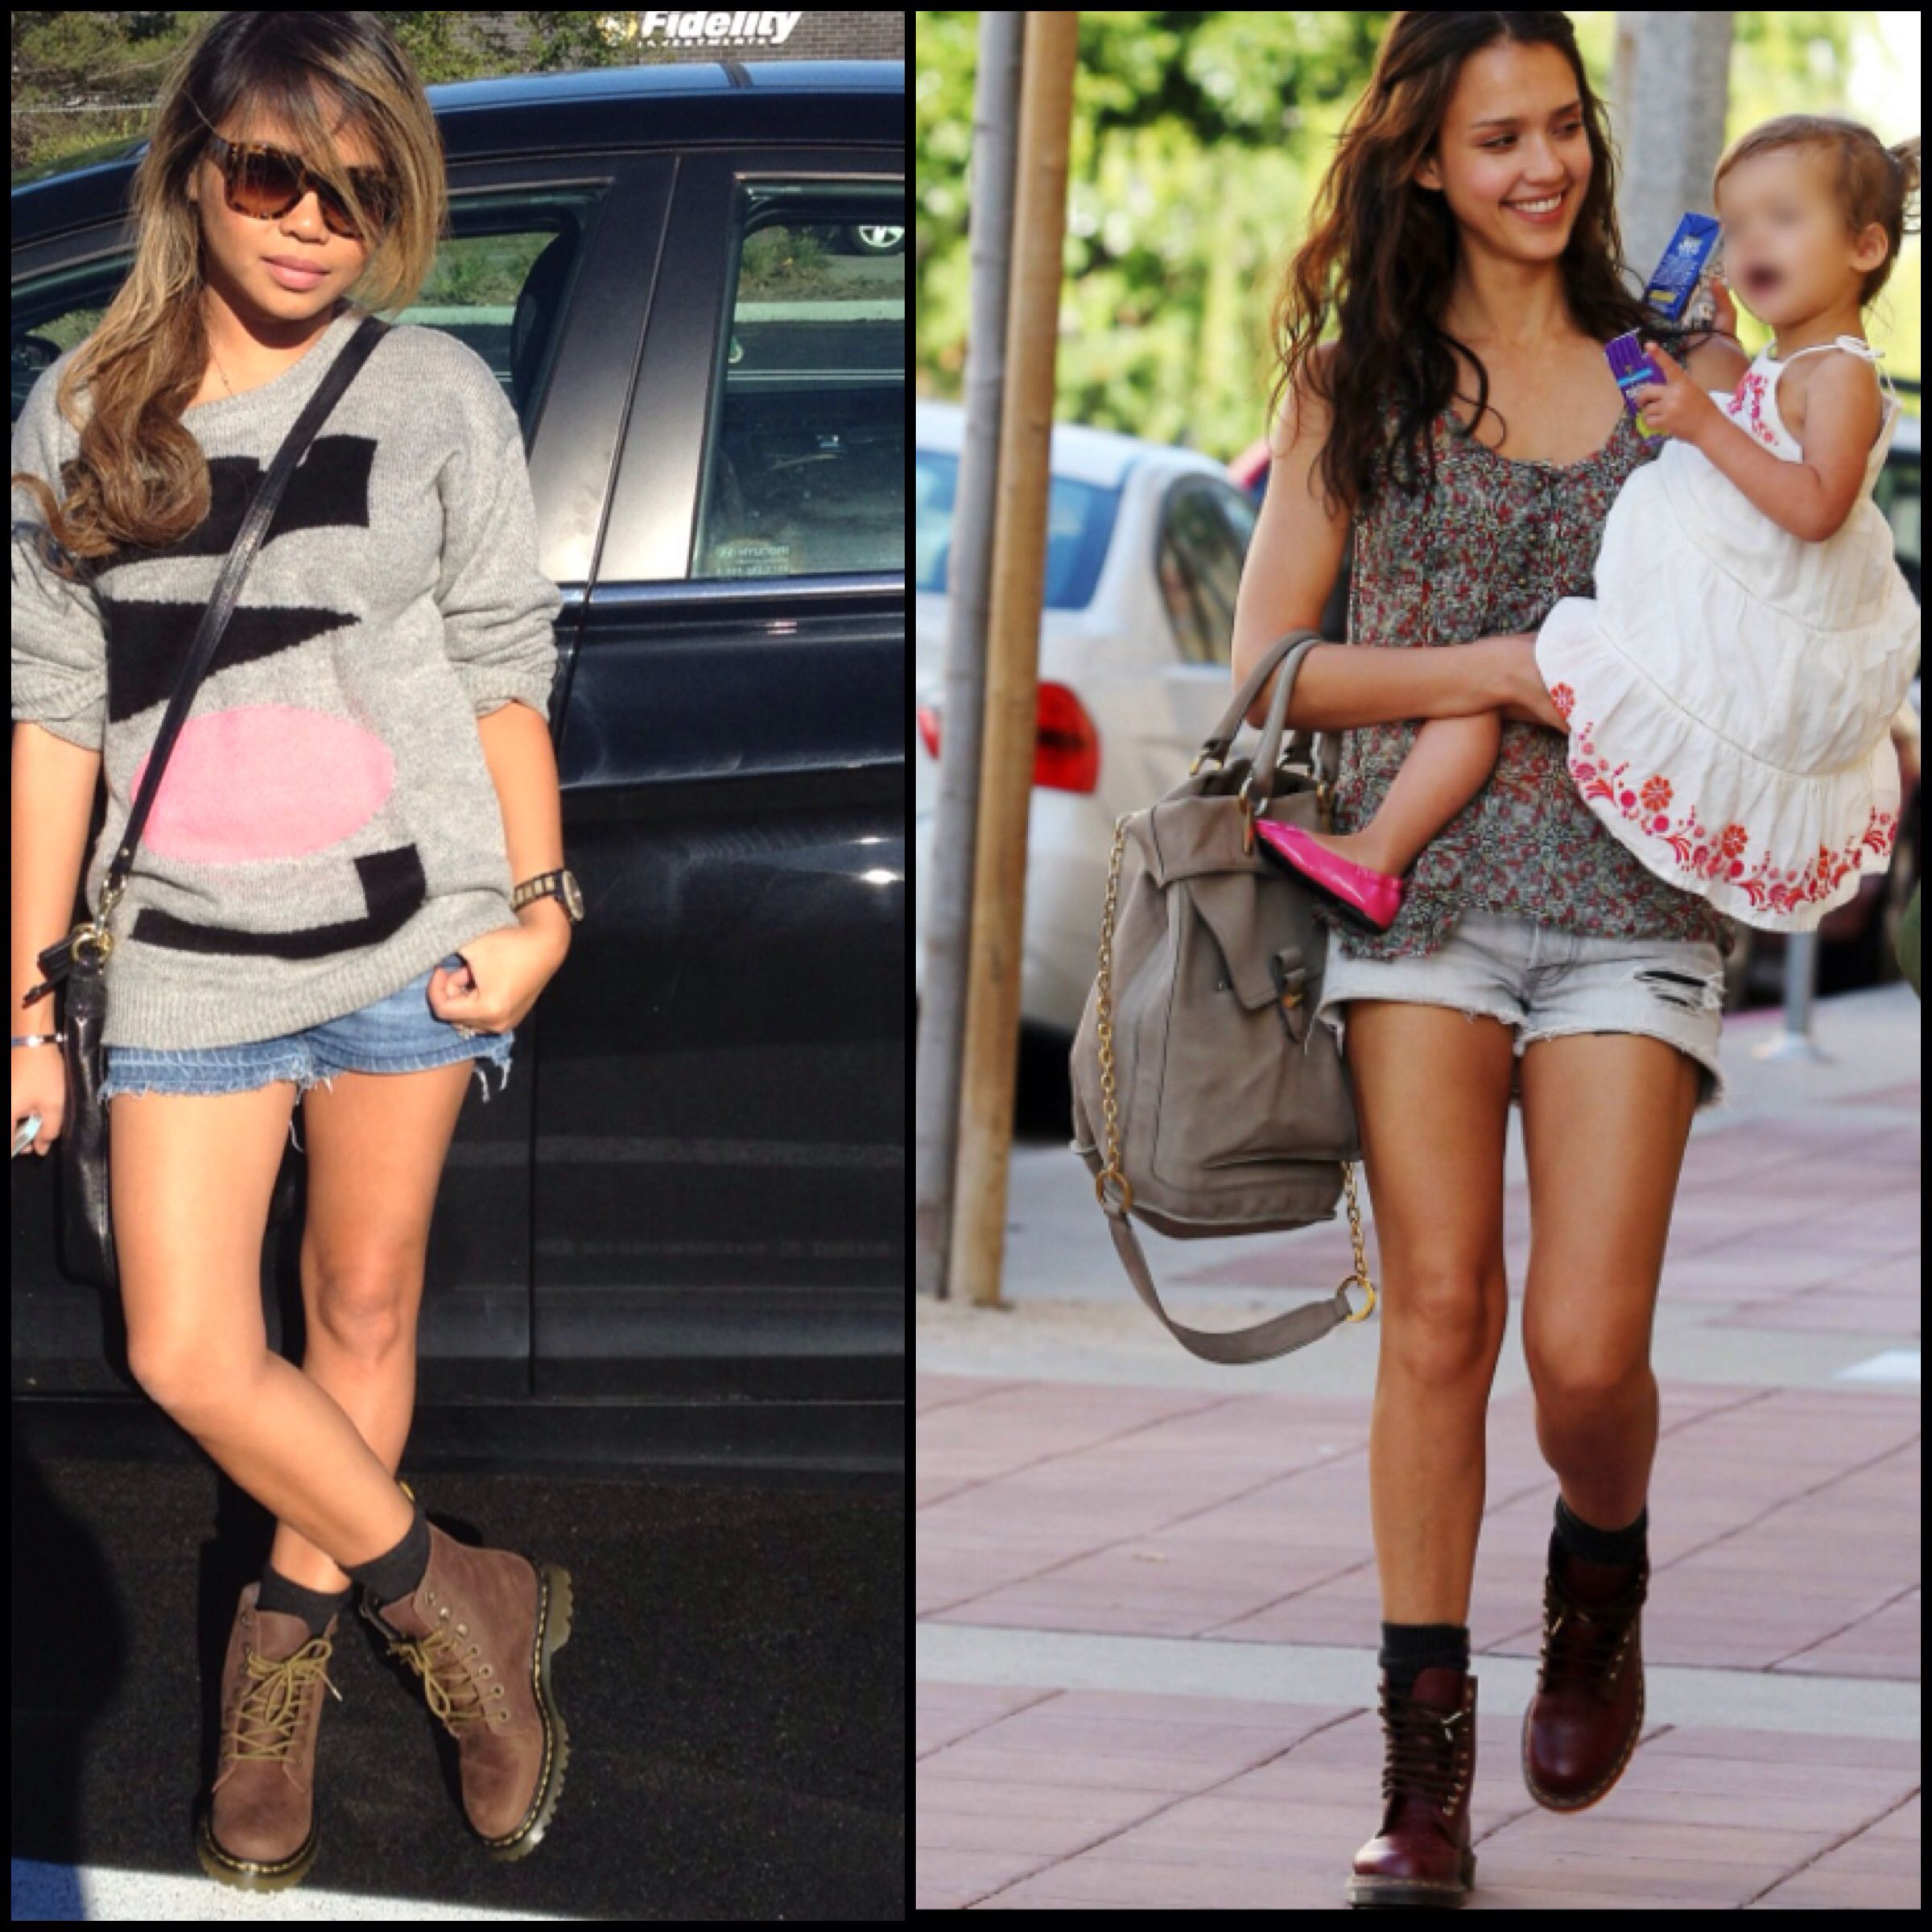 Dr. Martens outfit inspiration was jessica alba   Fashion ...